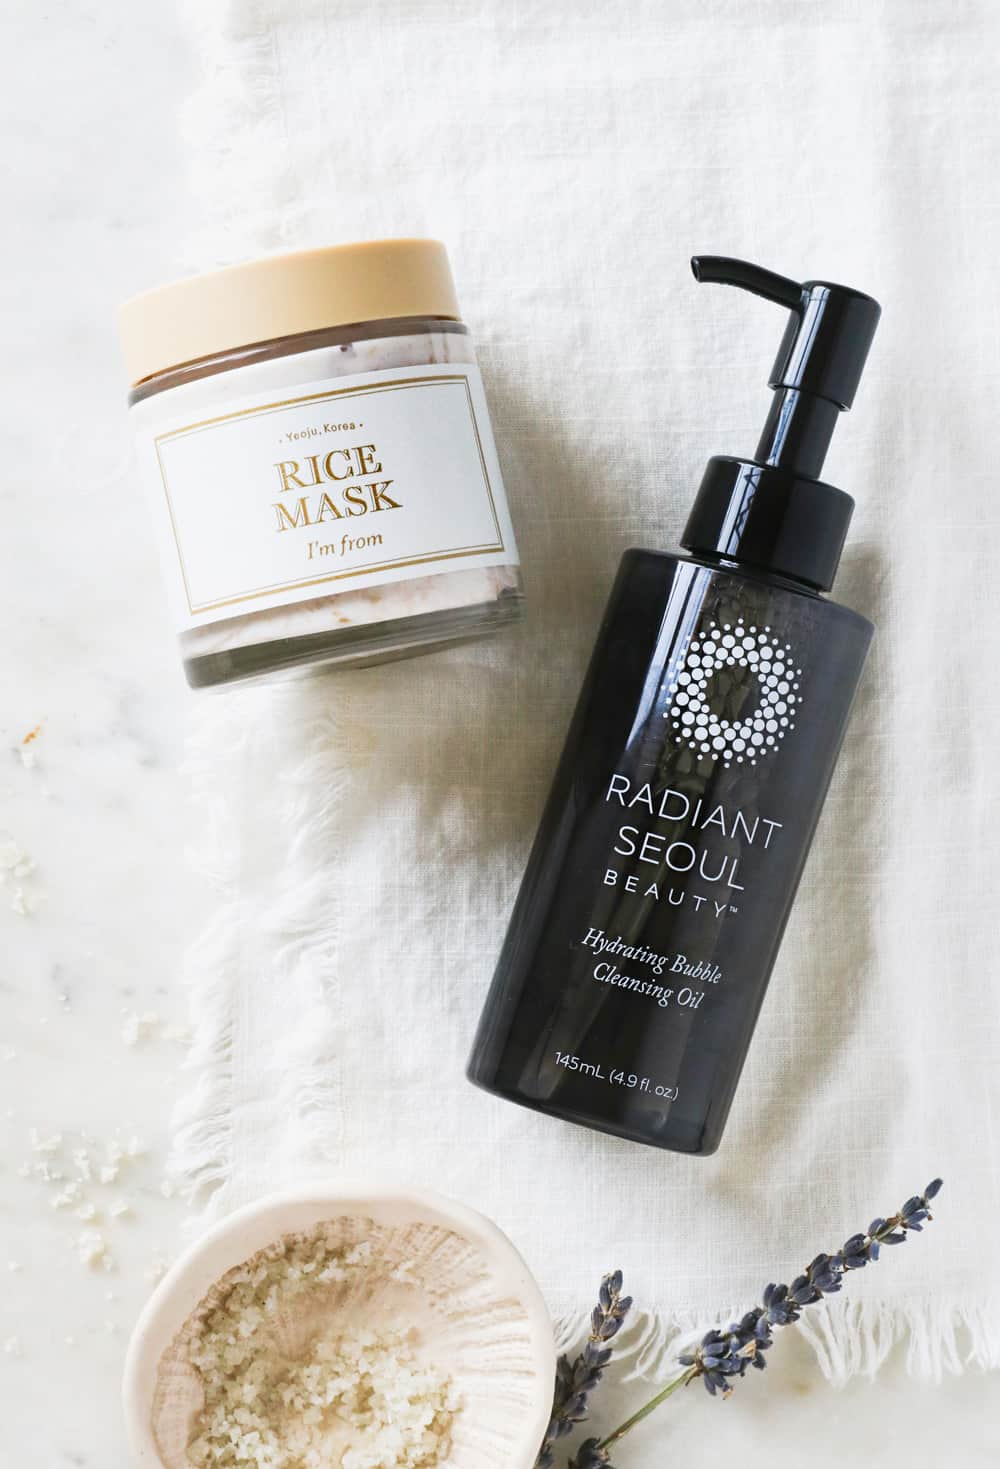 I'm From Rice Mask and Radiant Soul Cleansing Oil | Beauty Gift Guide